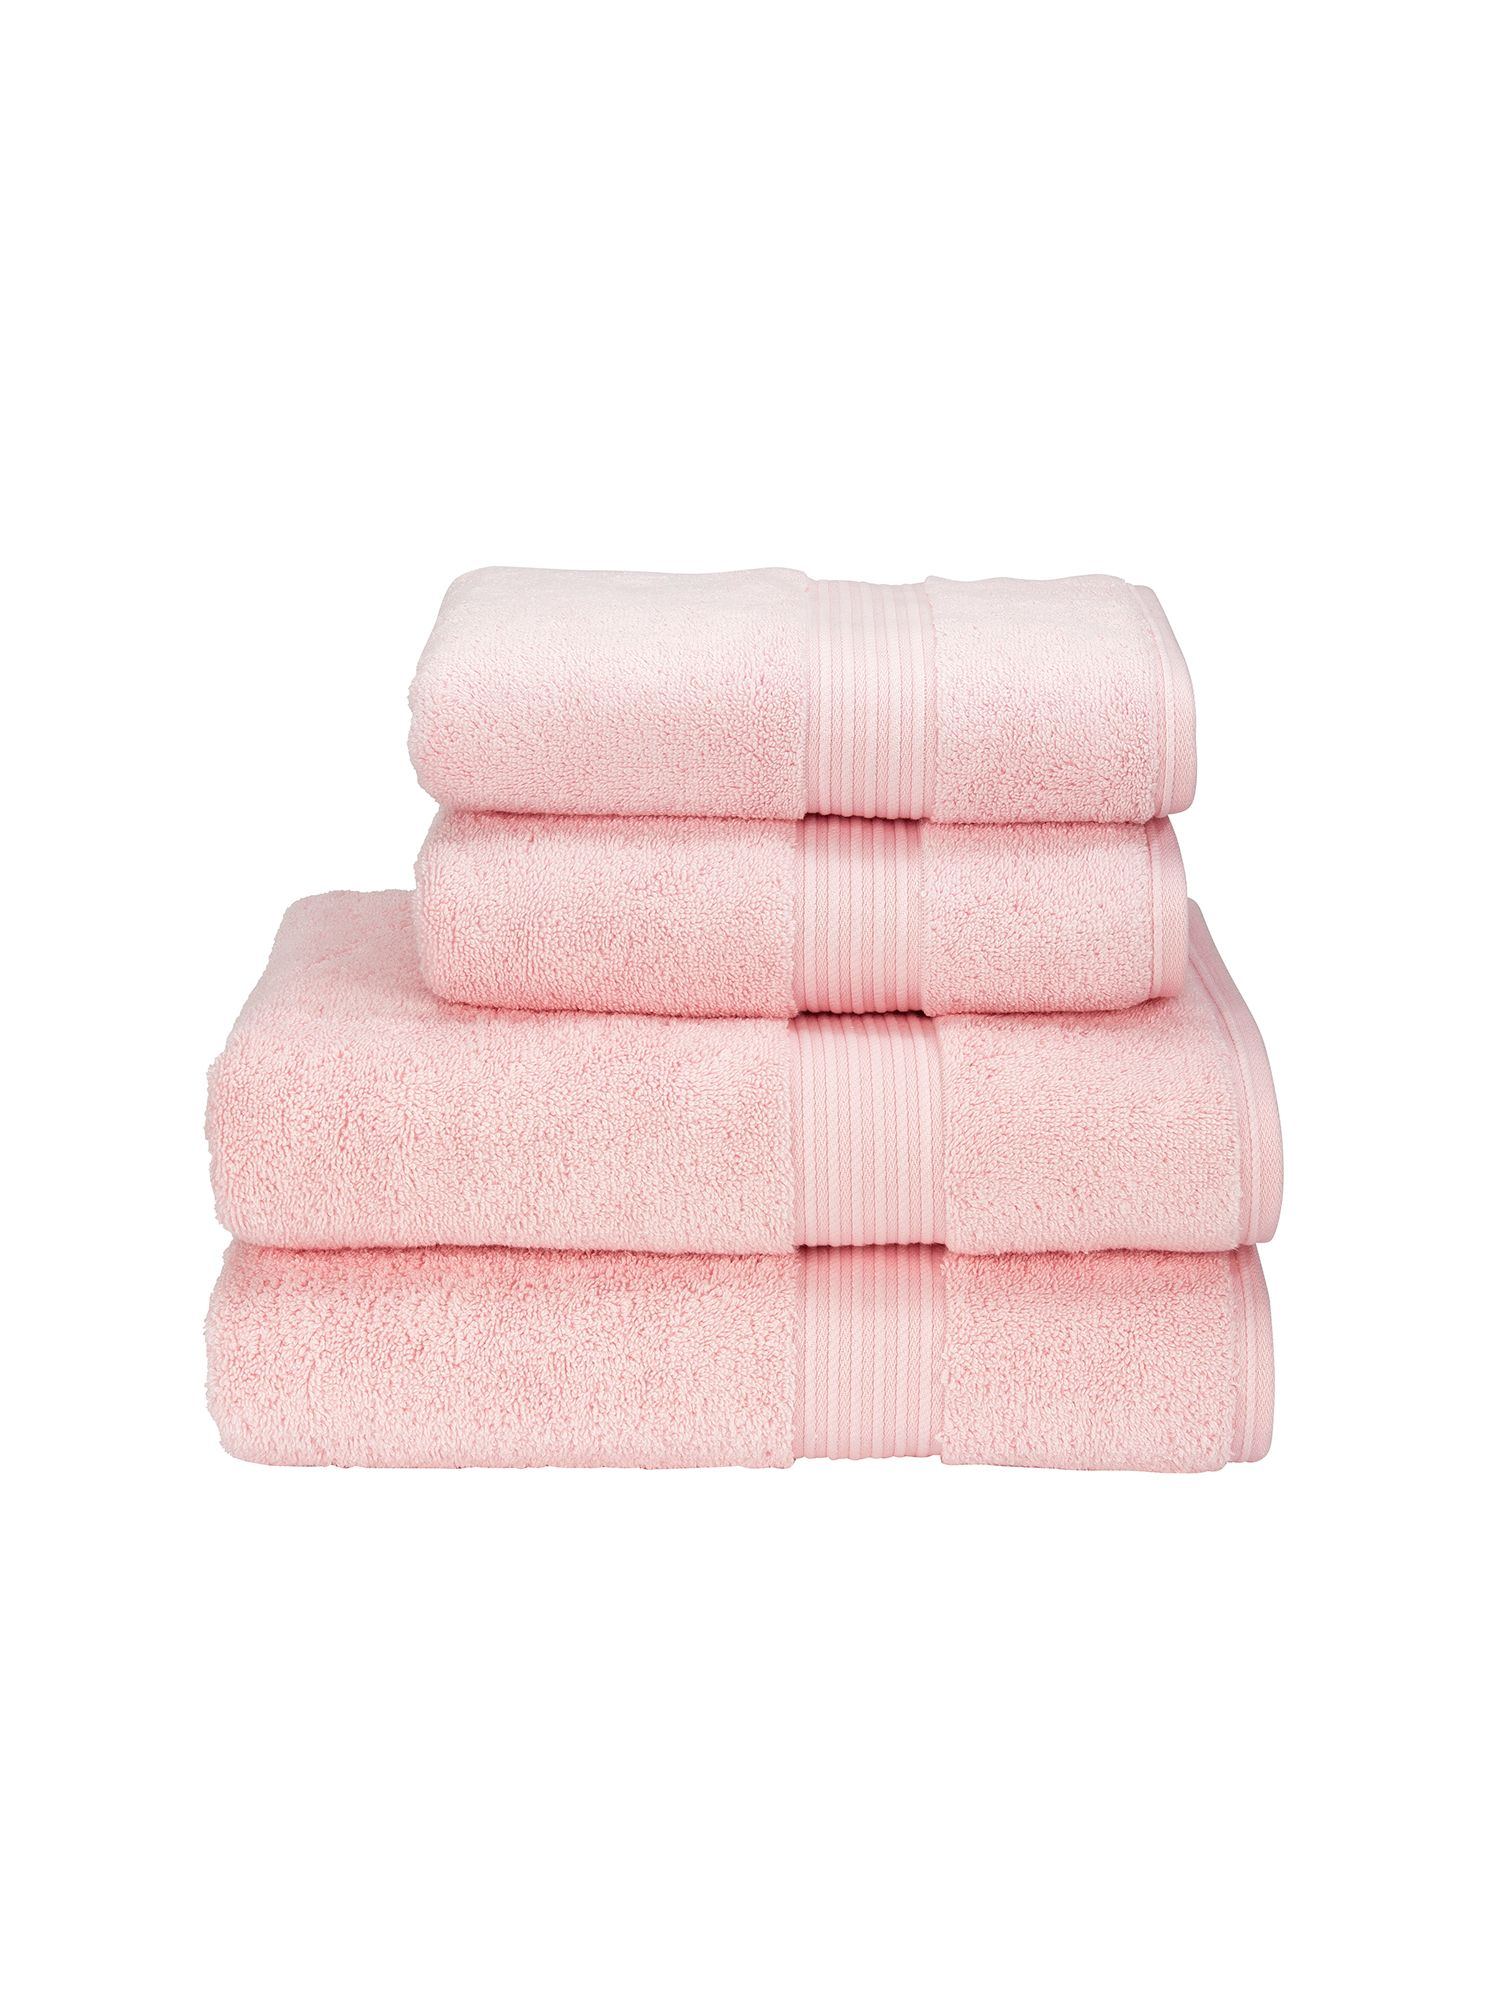 Supreme hygro towels pink